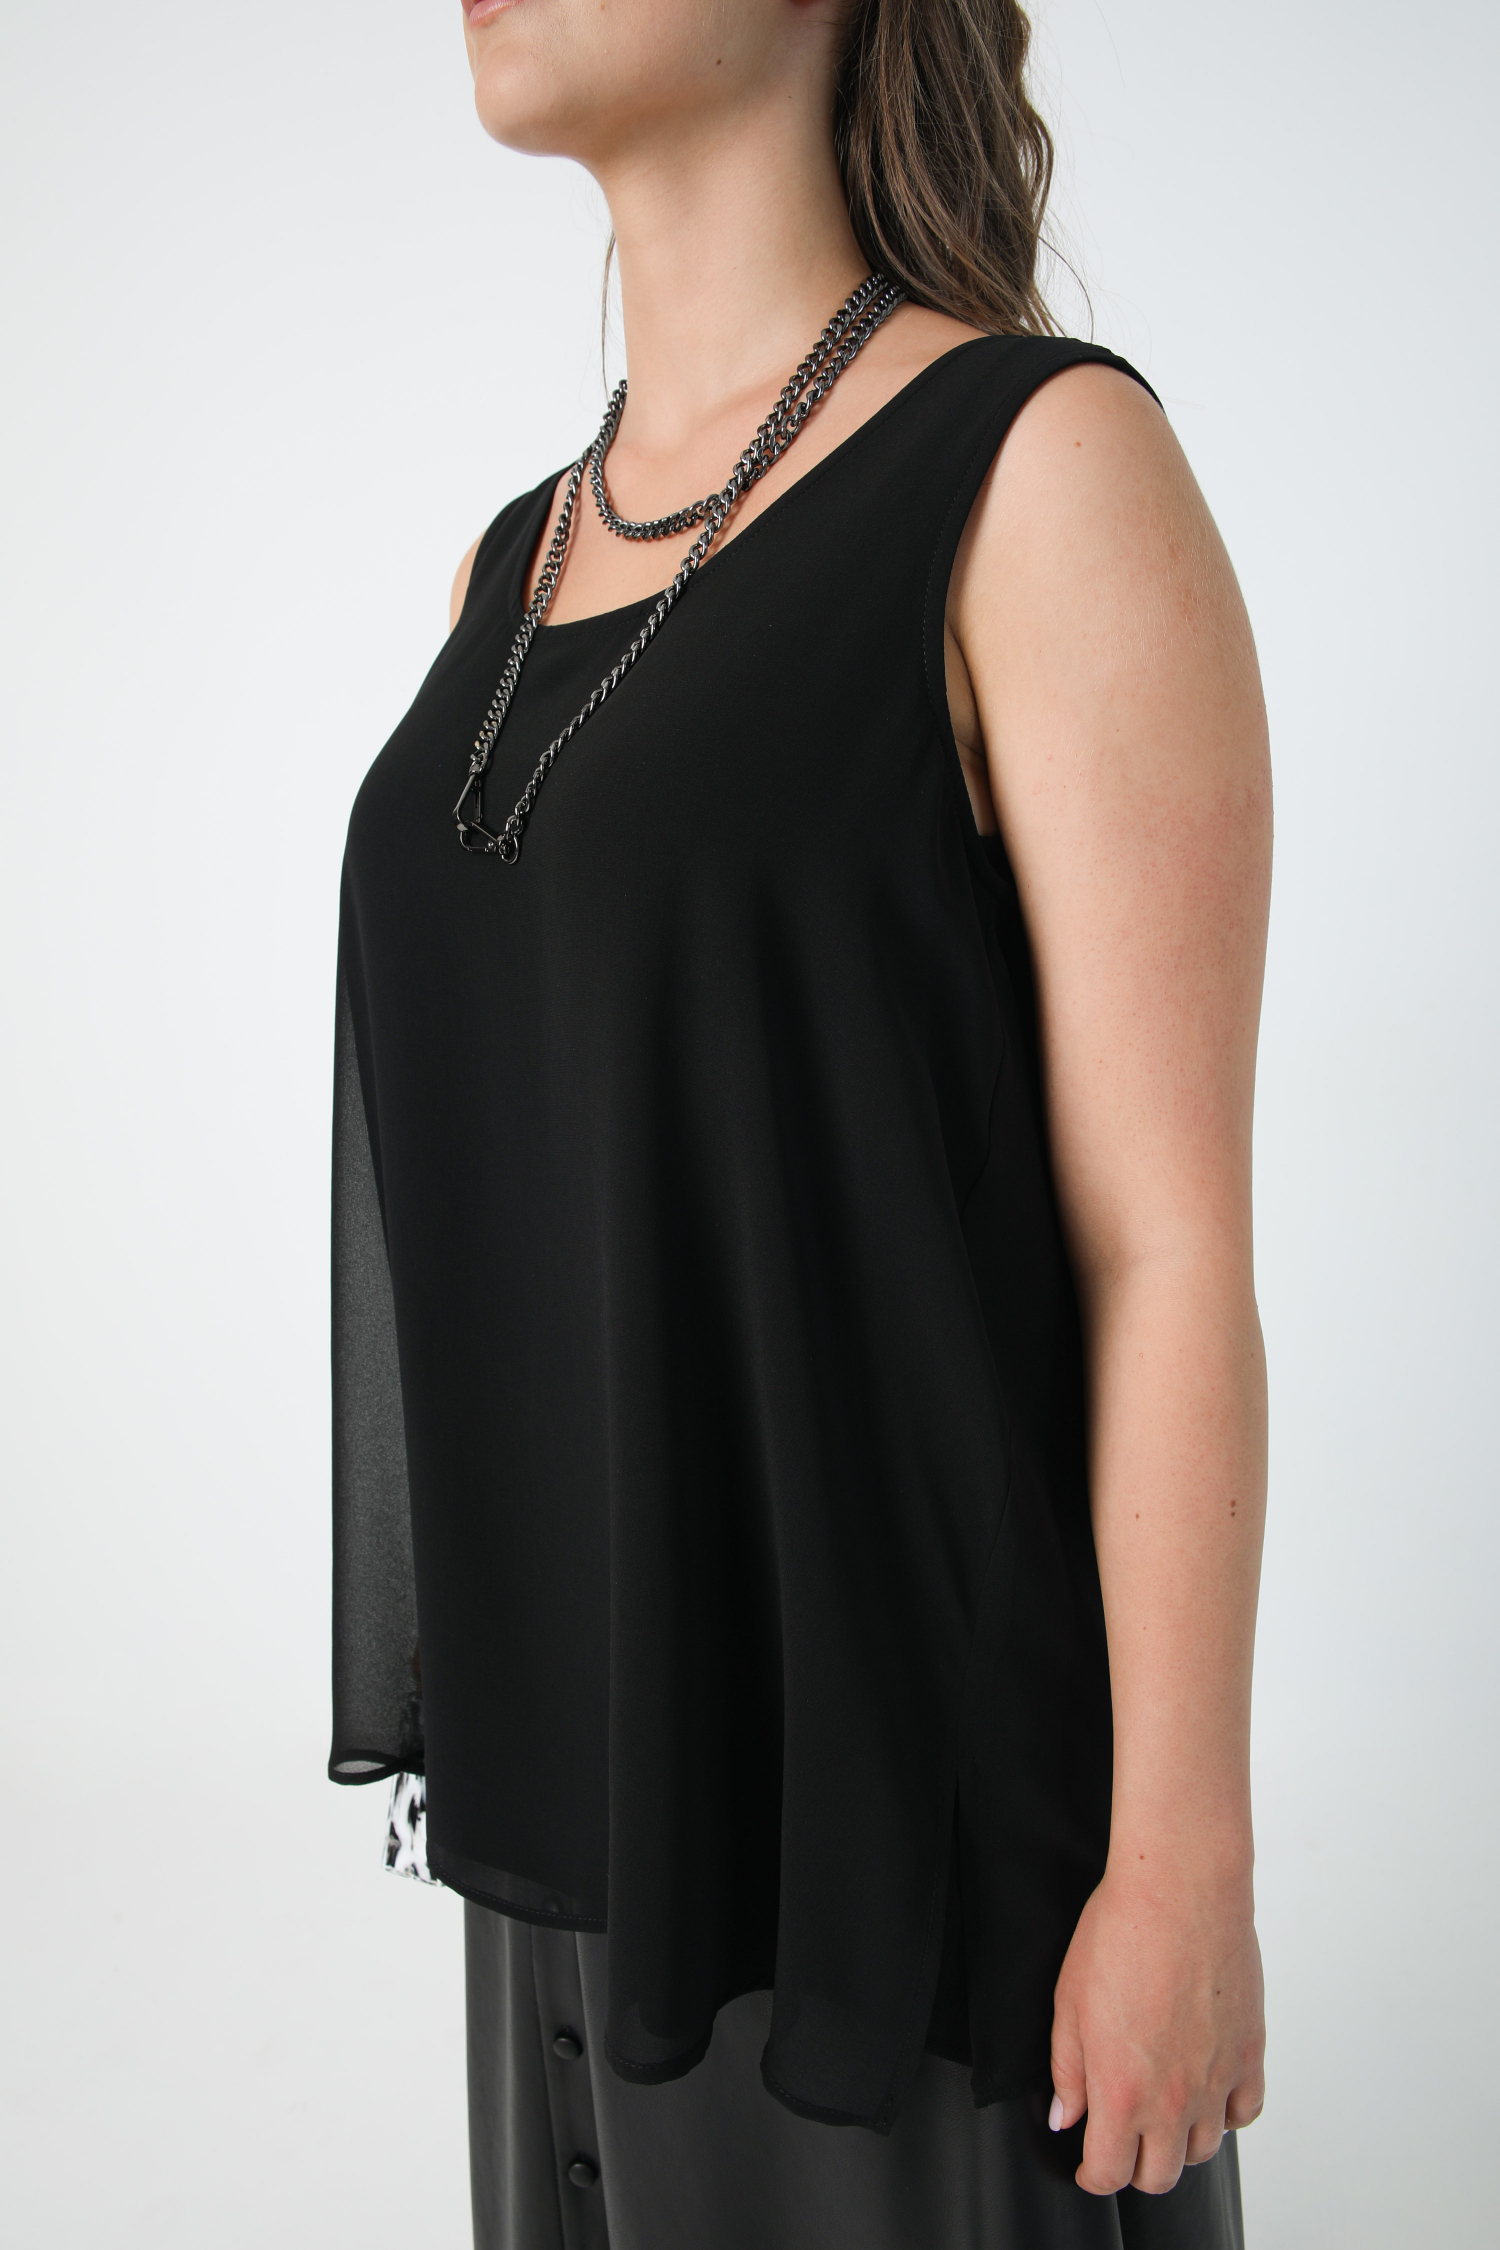 Double veil tank top (expedition 10/15 May)